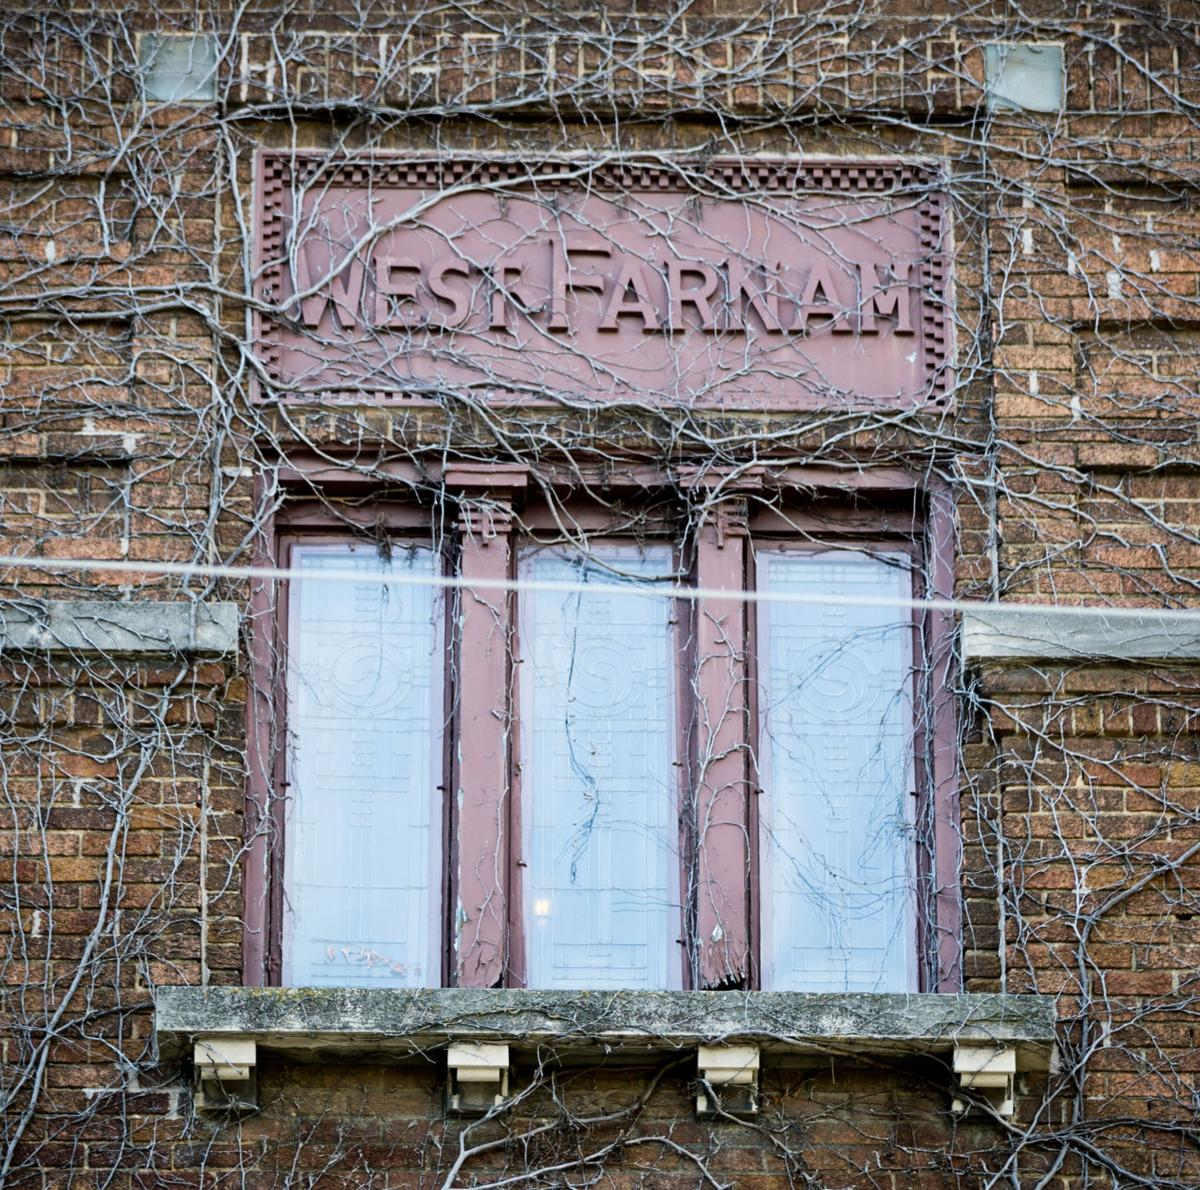 Apartments In My Area: Developers Plan To Modernize, Restore West Farnam